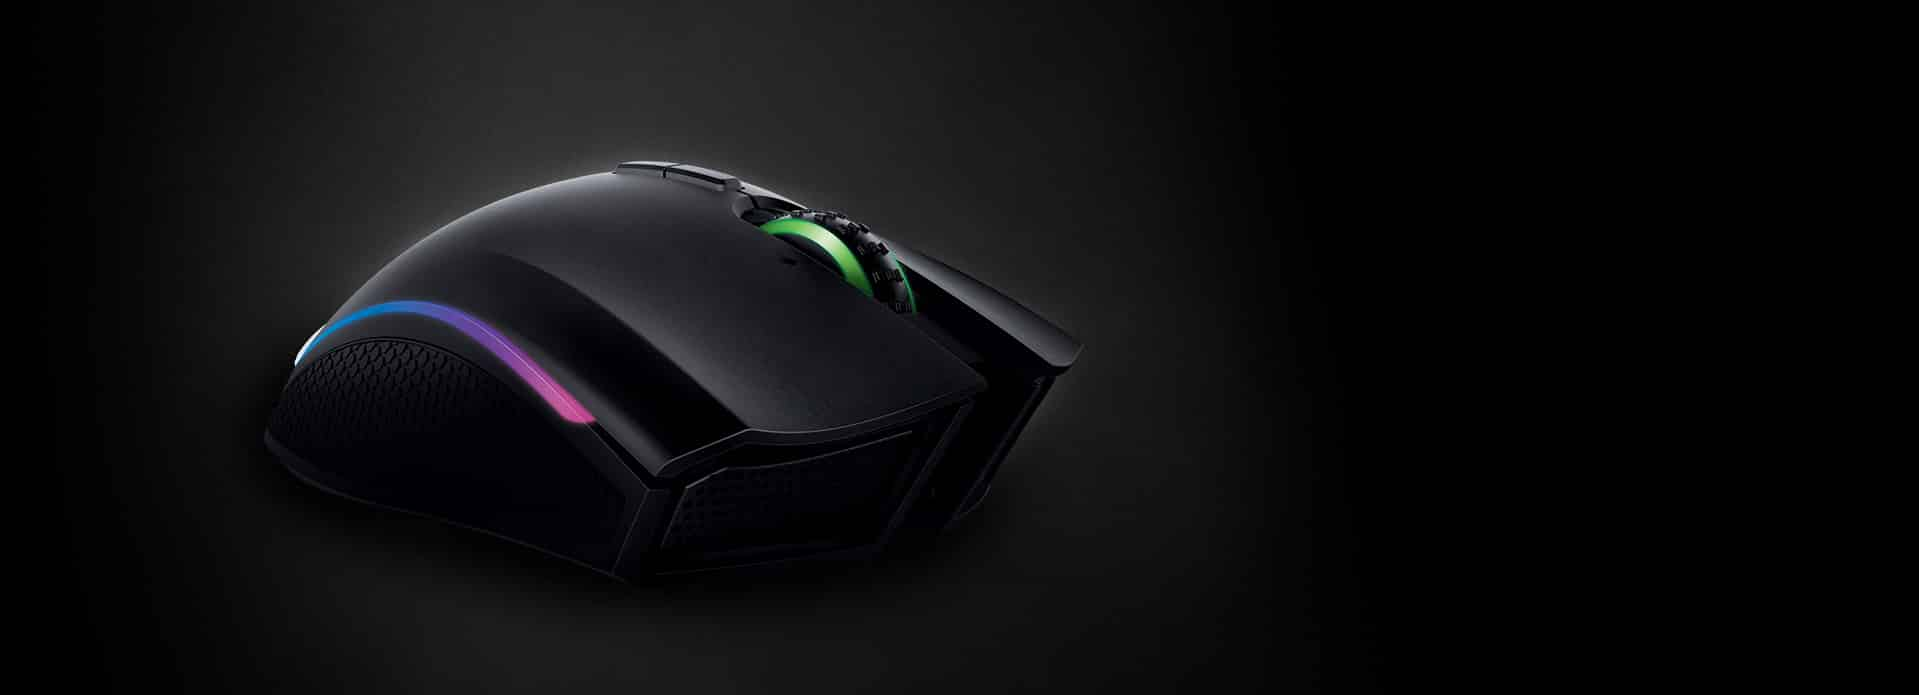 Beste Gaming Mouse